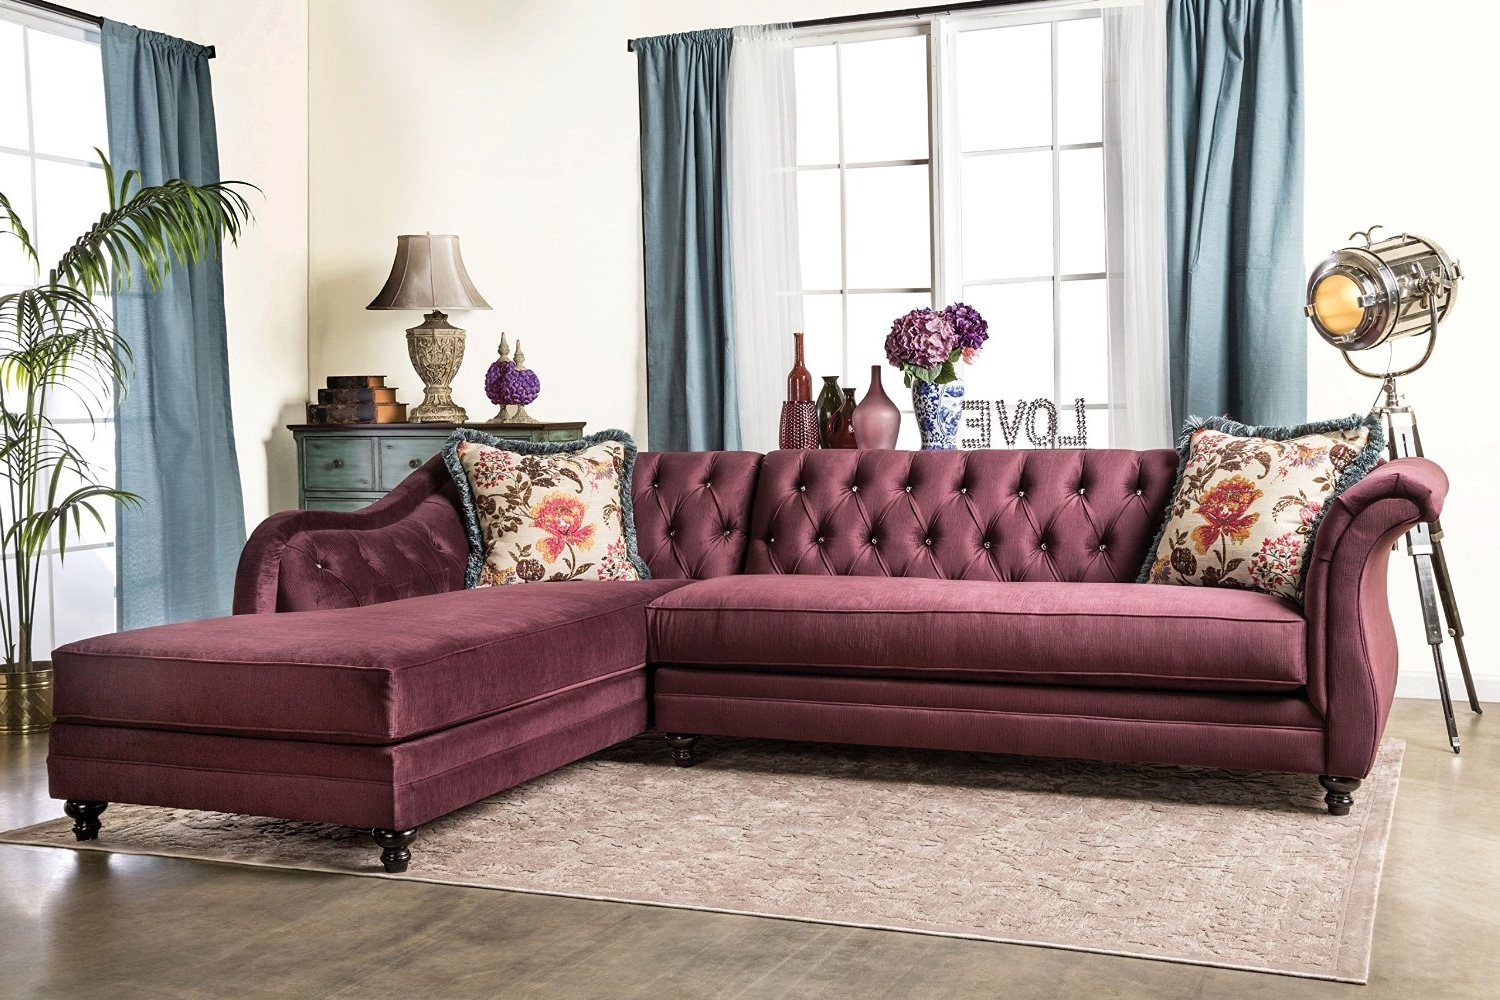 Preferred Chesterfield Sofas Throughout 25 Best Chesterfield Sofas To Buy In  (View 18 of 20)